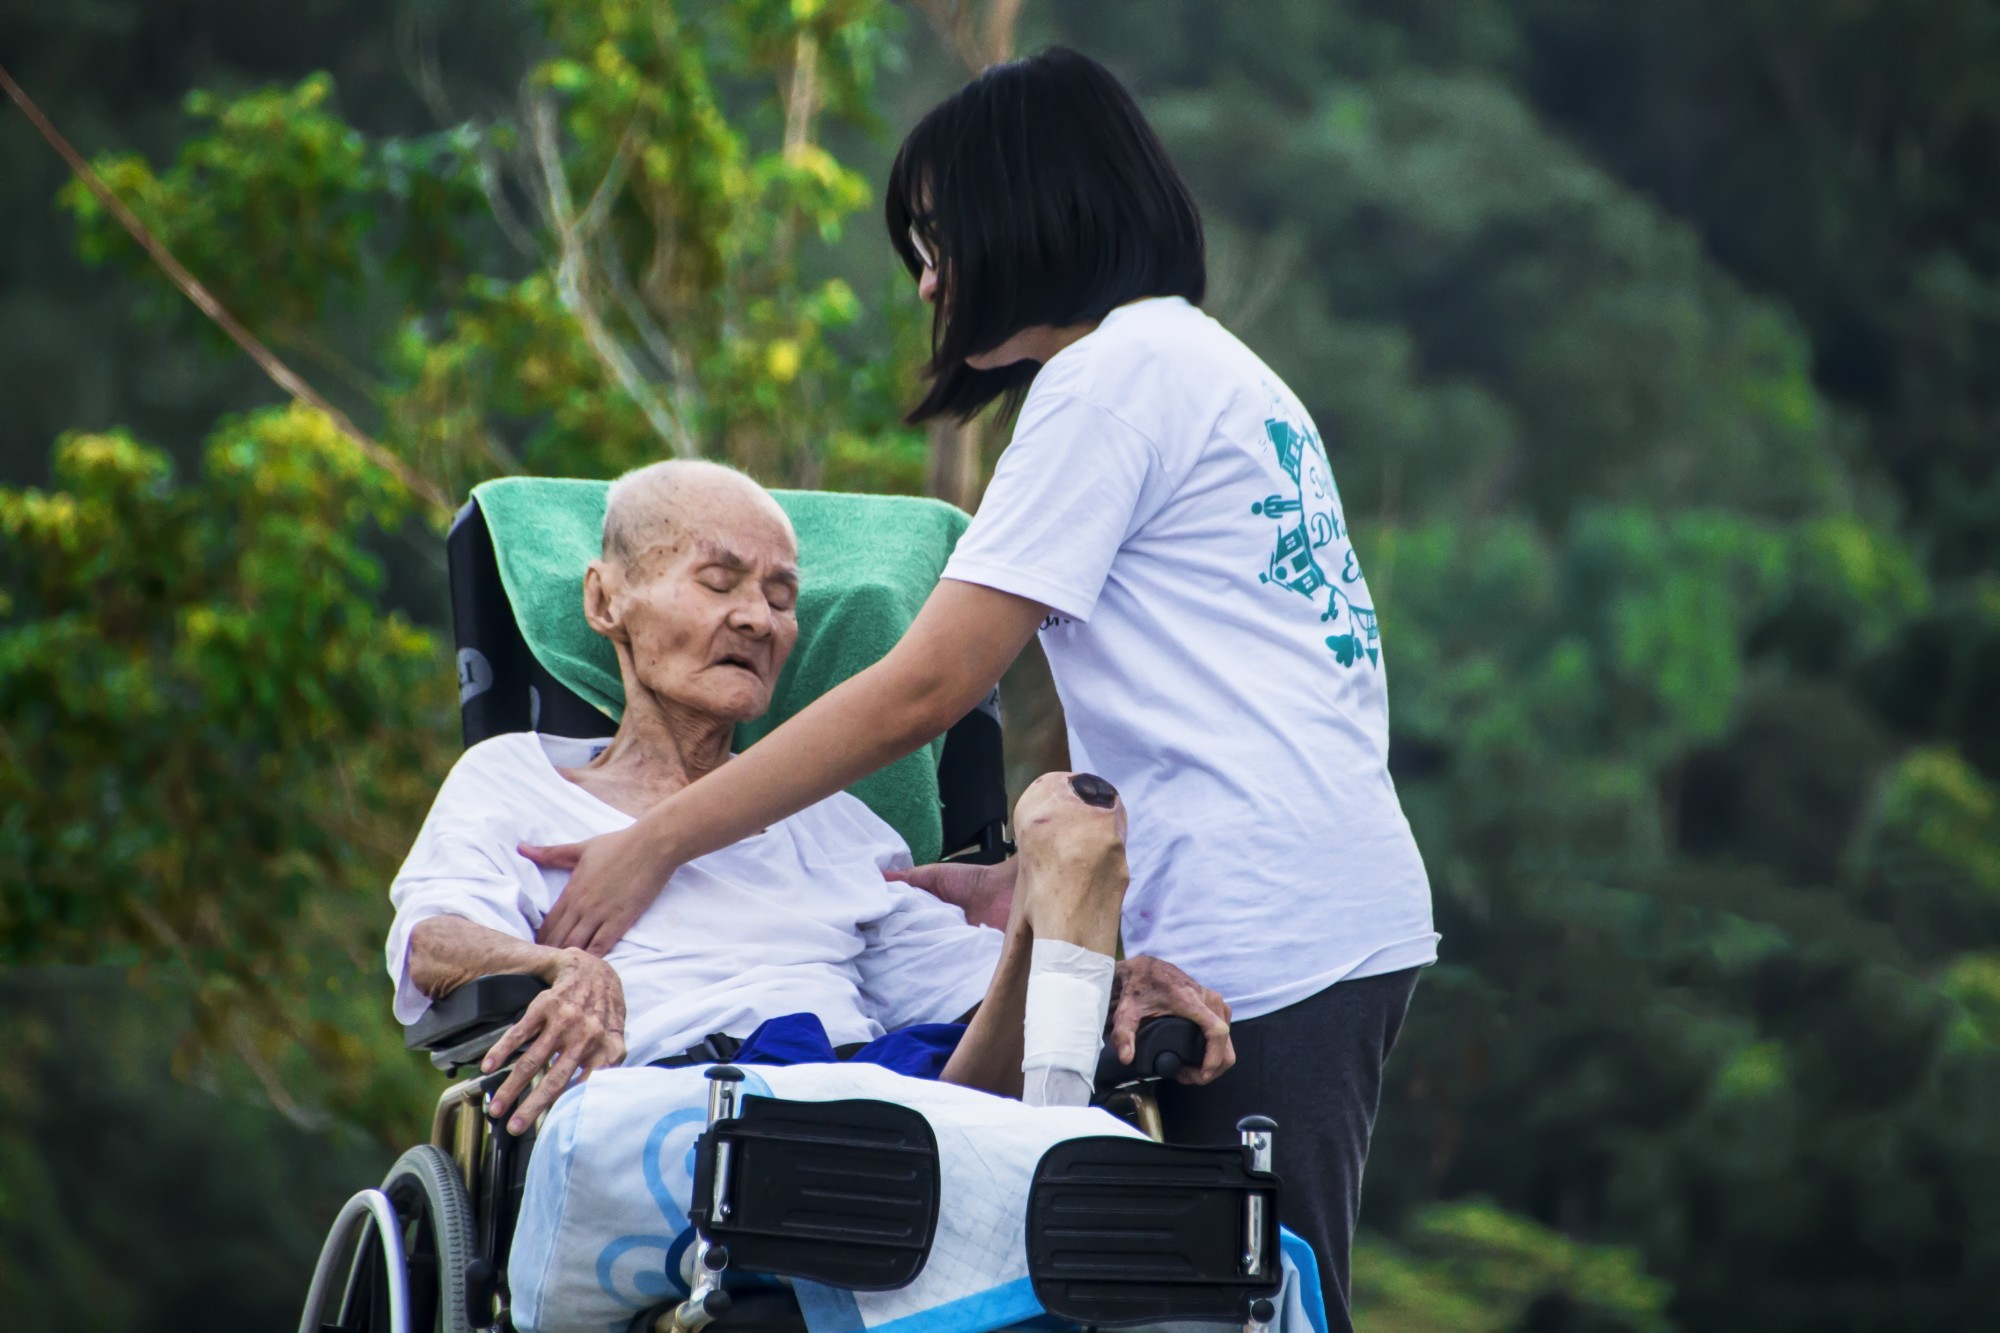 Young Woman Caregiver Taking Care of an Elderly Patient